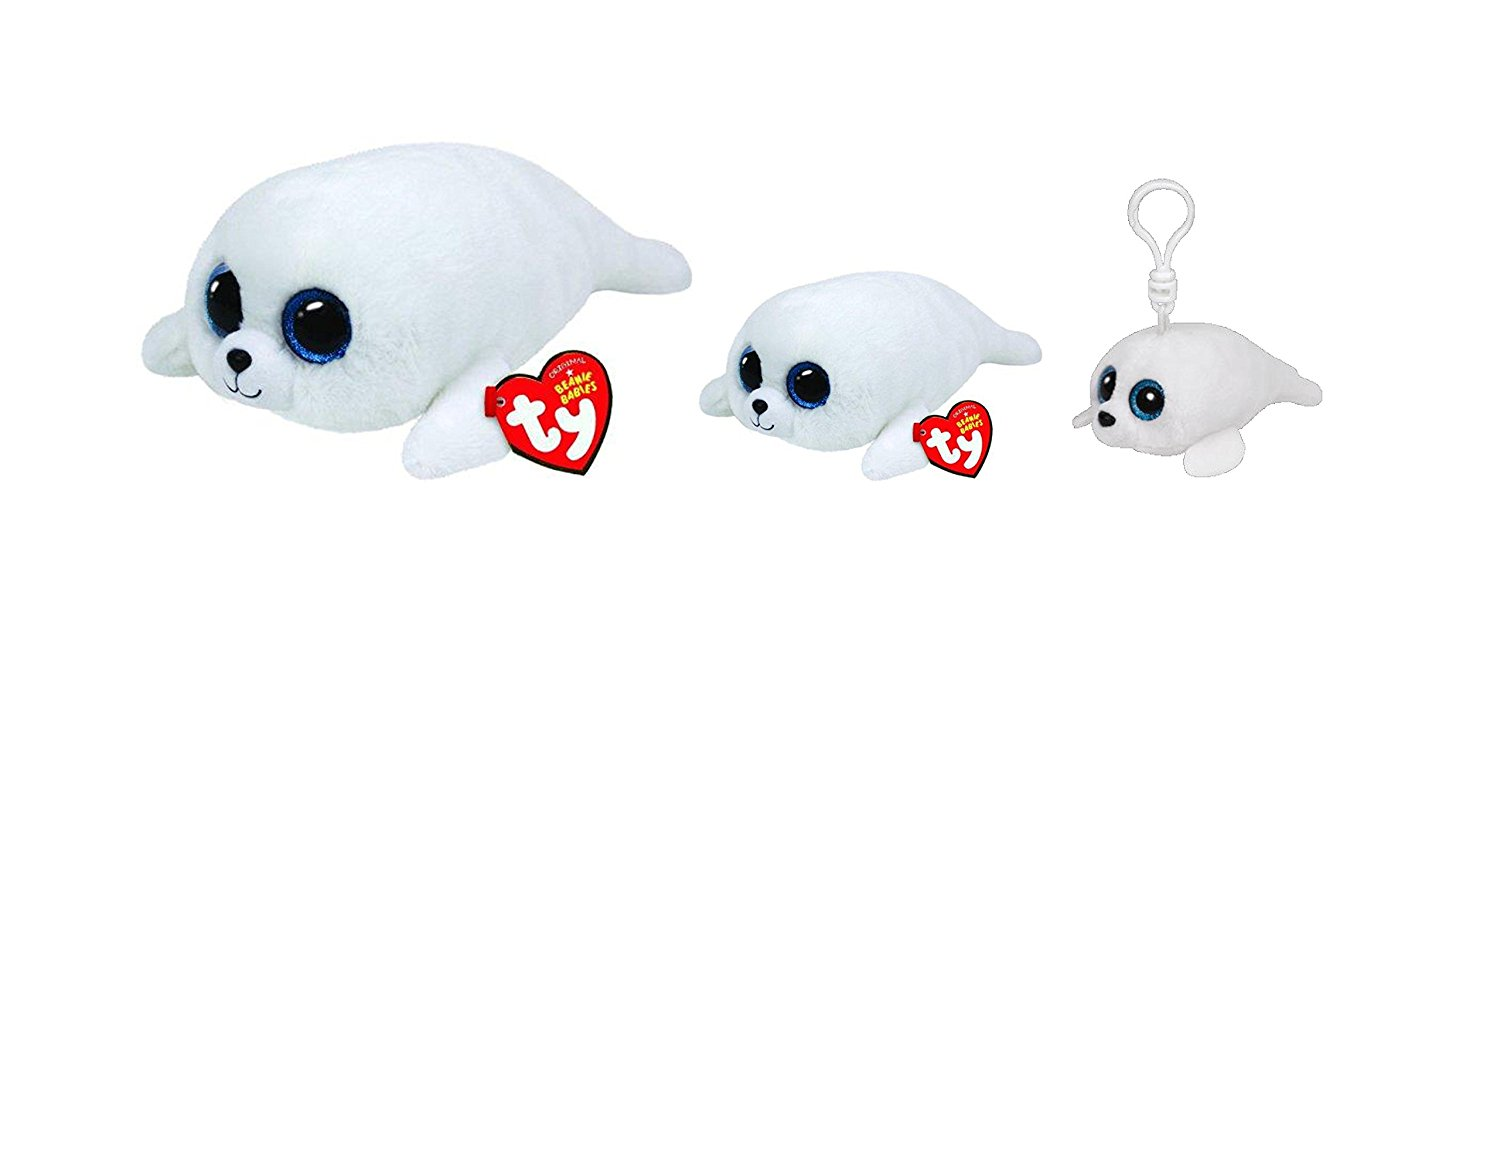 TY Beanie Boos New Set of 3 Icy Baby White Seal Plush Toys. Includes Clip a17002ff313